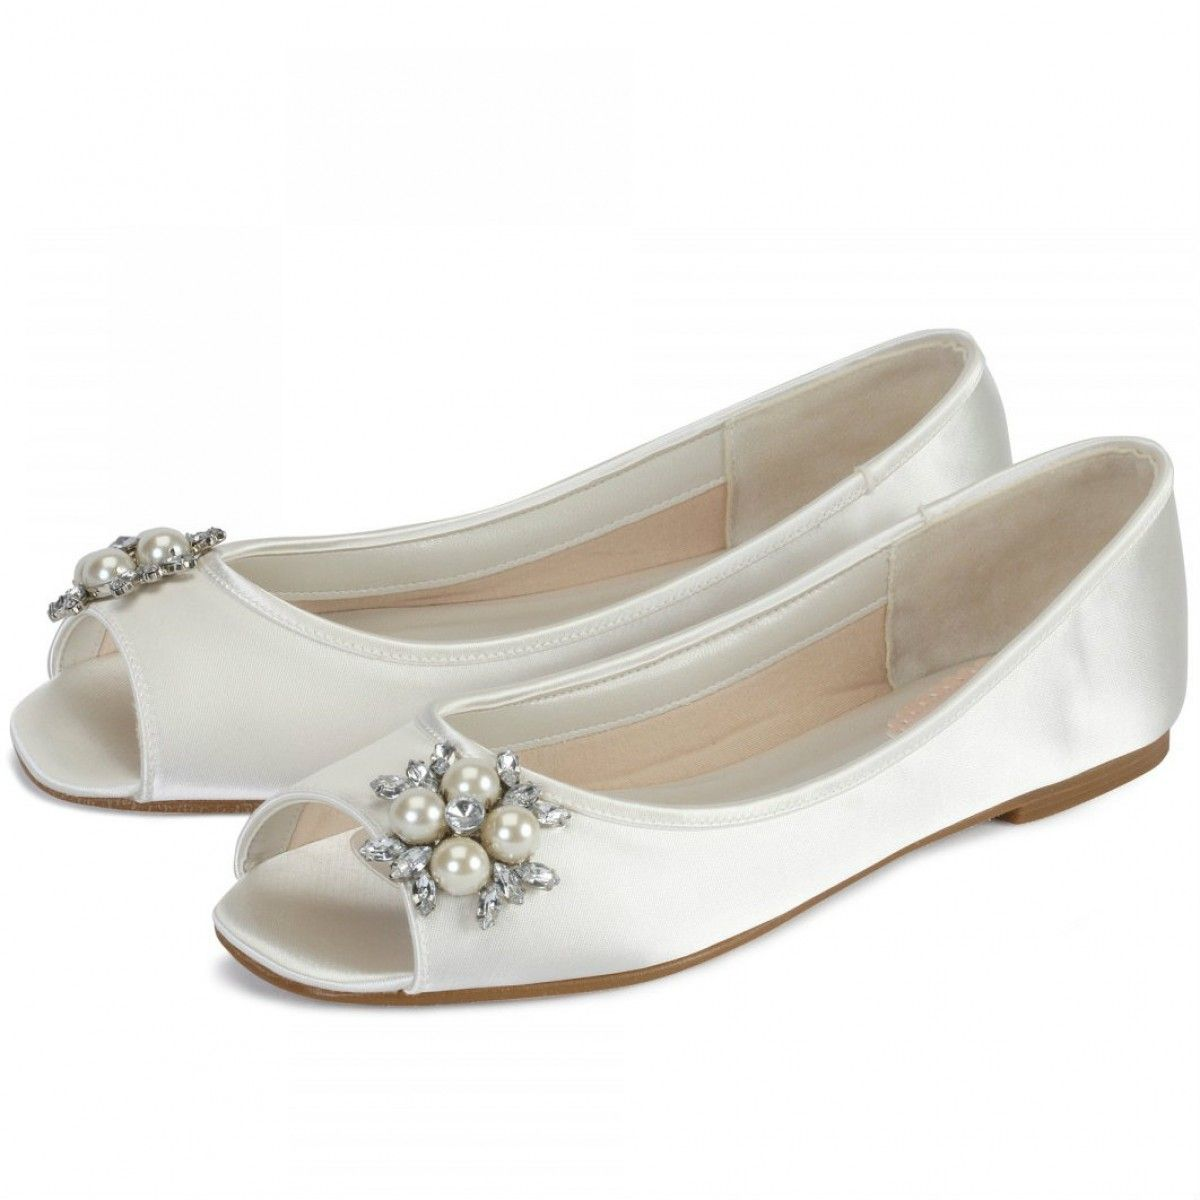 351247175379 Flower by Pink for Paradox London Ivory Dyeable Flat Wedding or Occasion  Shoes - SALE - Flats - Shoe by Heel Height - Wedding Shoes